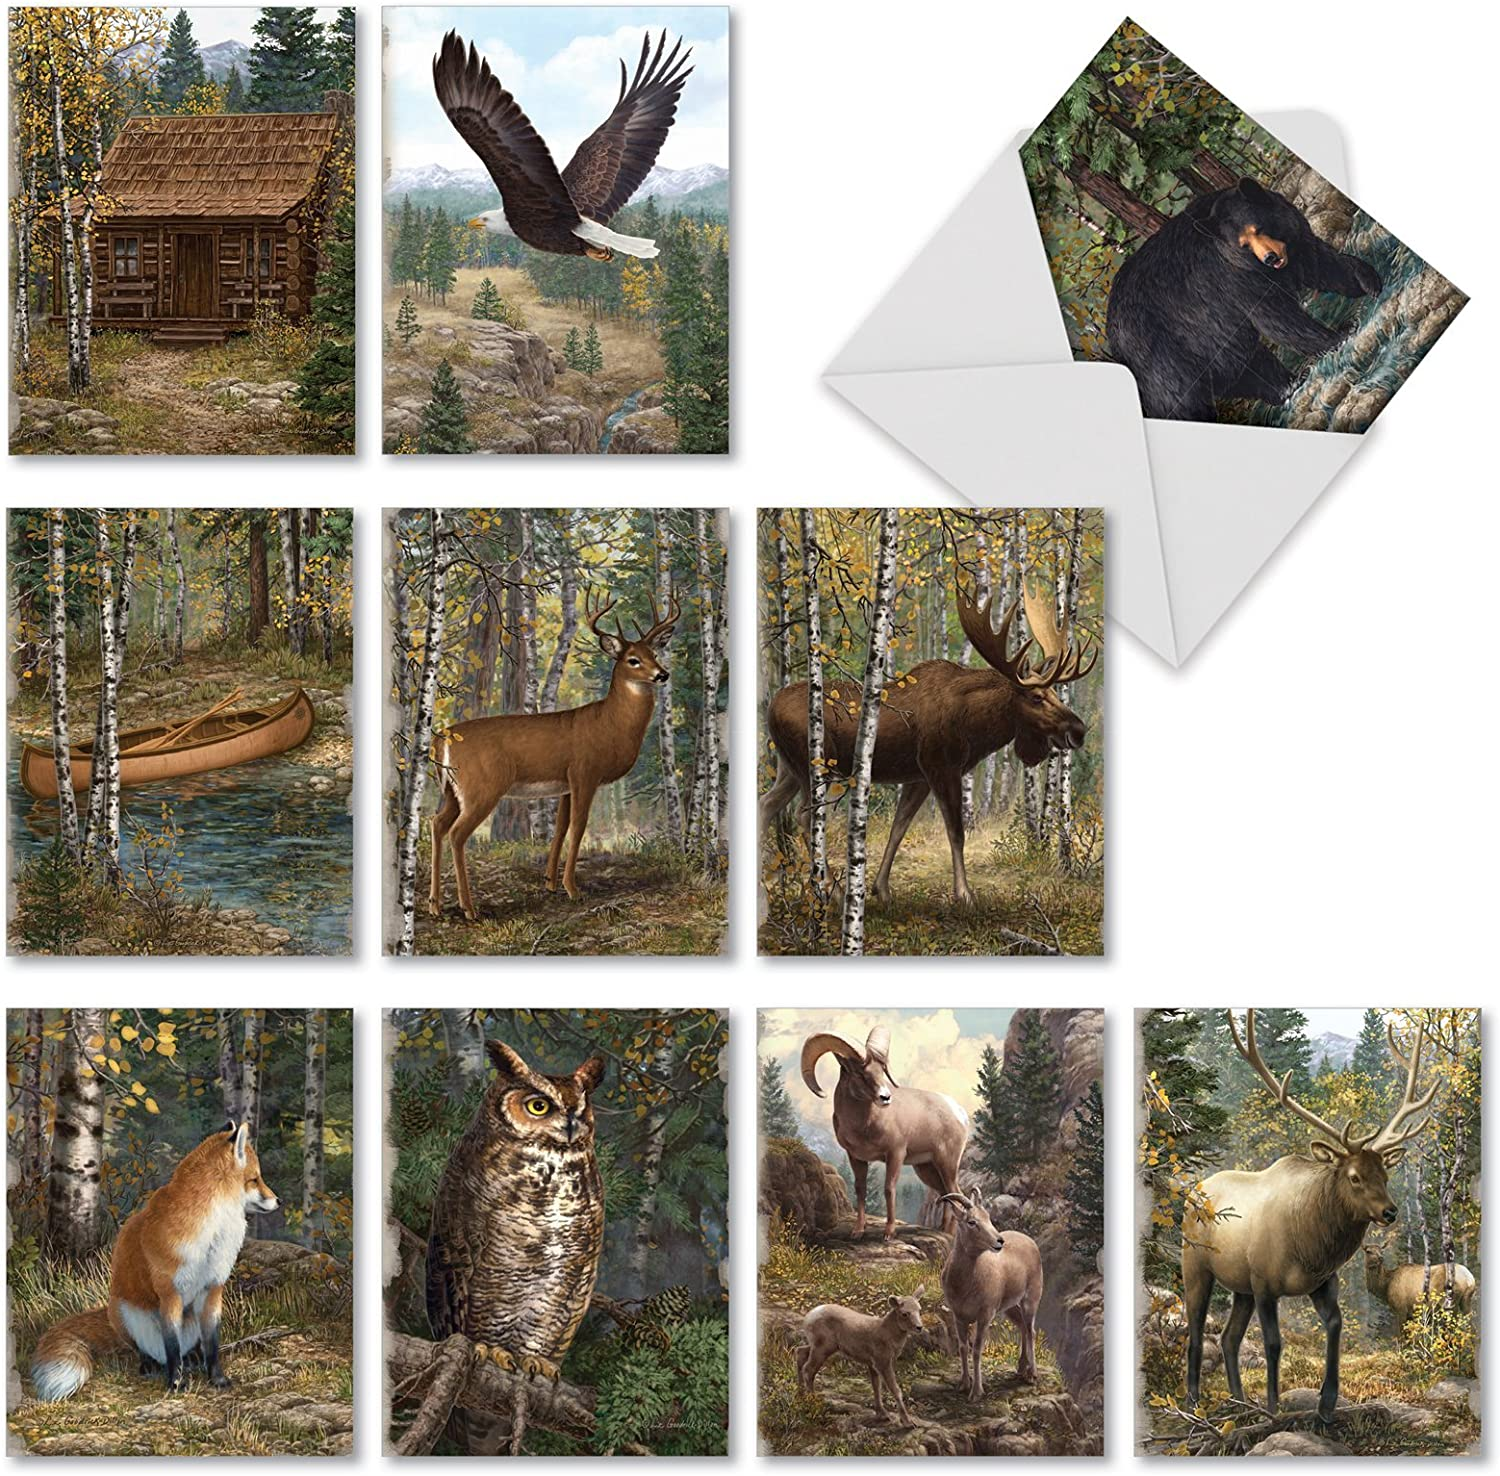 The Best Card Company - 10 Blank Greeting Cards with Animals (4 x 5.12 Inch) - Assorted Pets, Wildlife Kid Cards - Into The Woods M10032BK